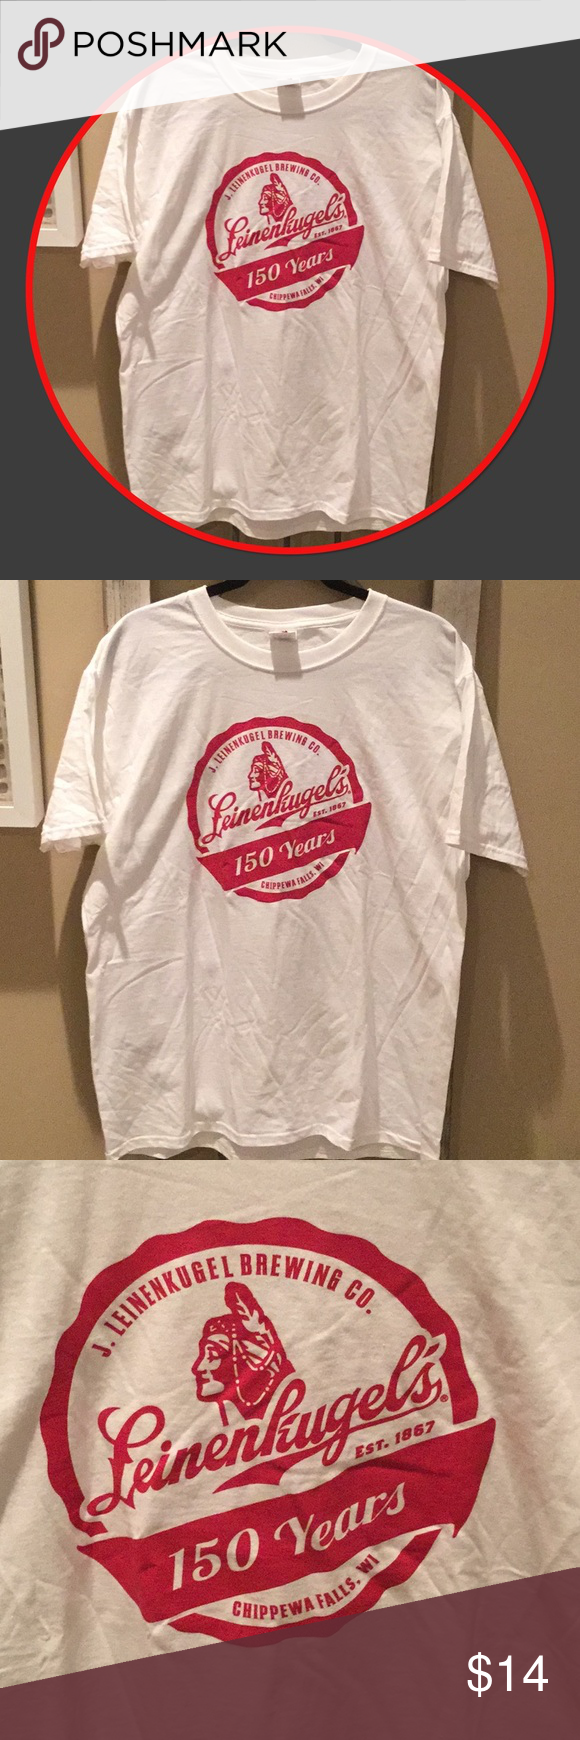 c3be9c1ae98 Leinie s Mens T-shirt Leinenkugel s men s T-shirt. Size Large. NWOT. White  tee with red logo and writing. Shirts Tees - Short Sleeve